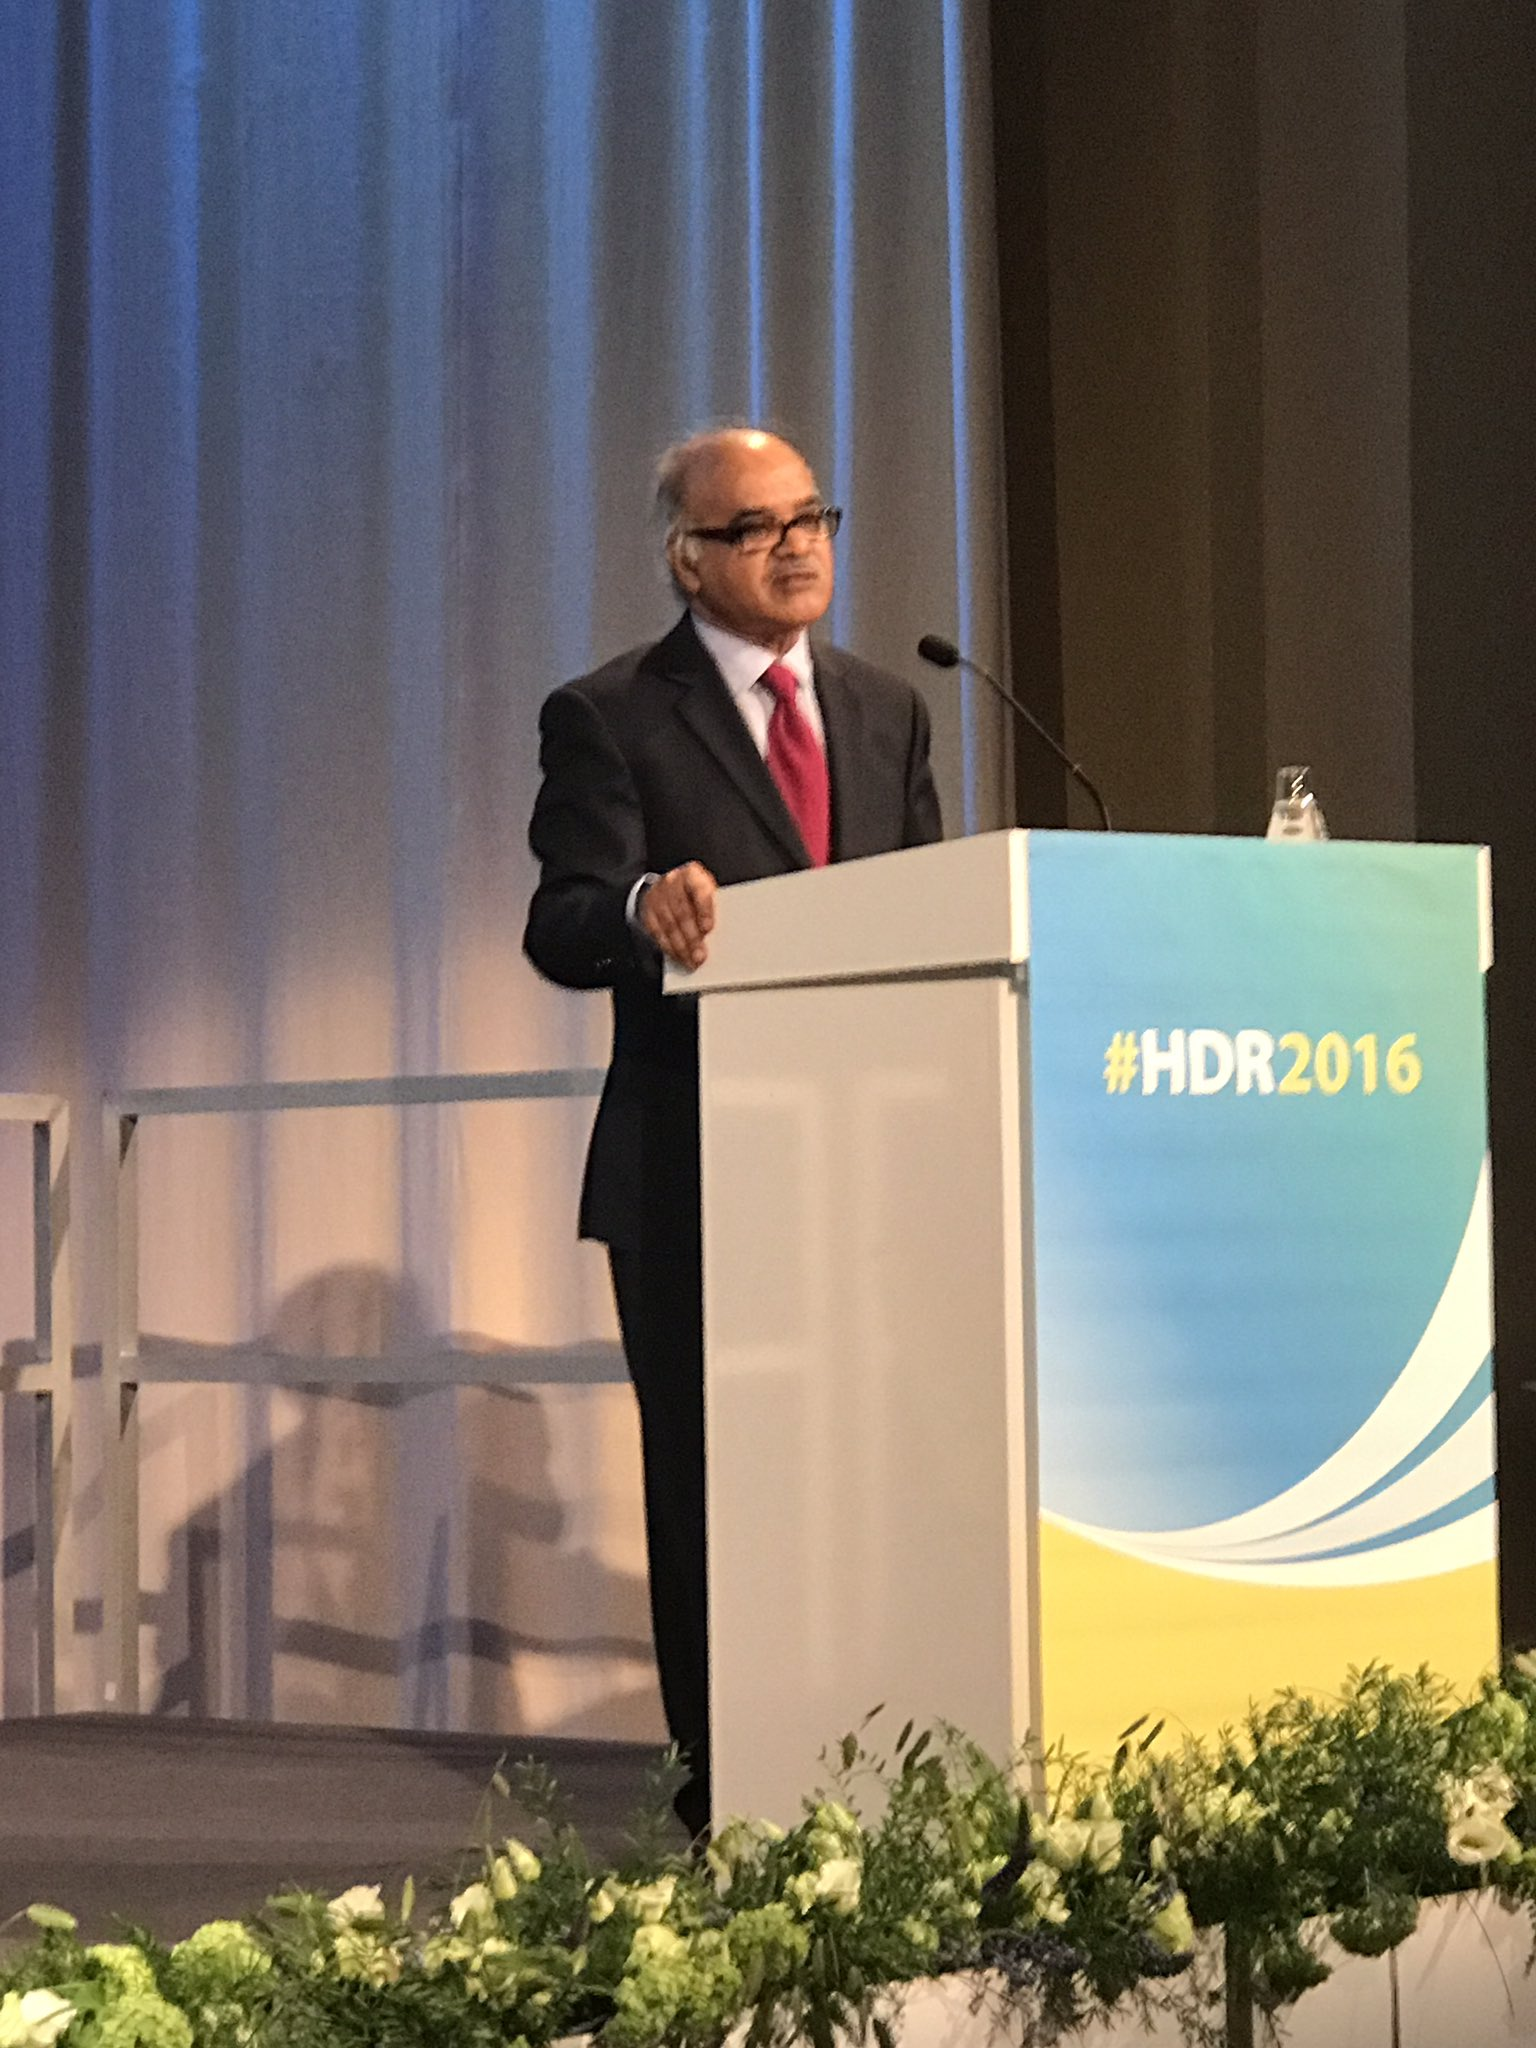 @SelimJahanUNDP presenting #HDR2016 tells audience Inequalities defining issue of our time. @TheUNTimes @UNDP_Sweden @UNDP https://t.co/zUOAJtGdj5